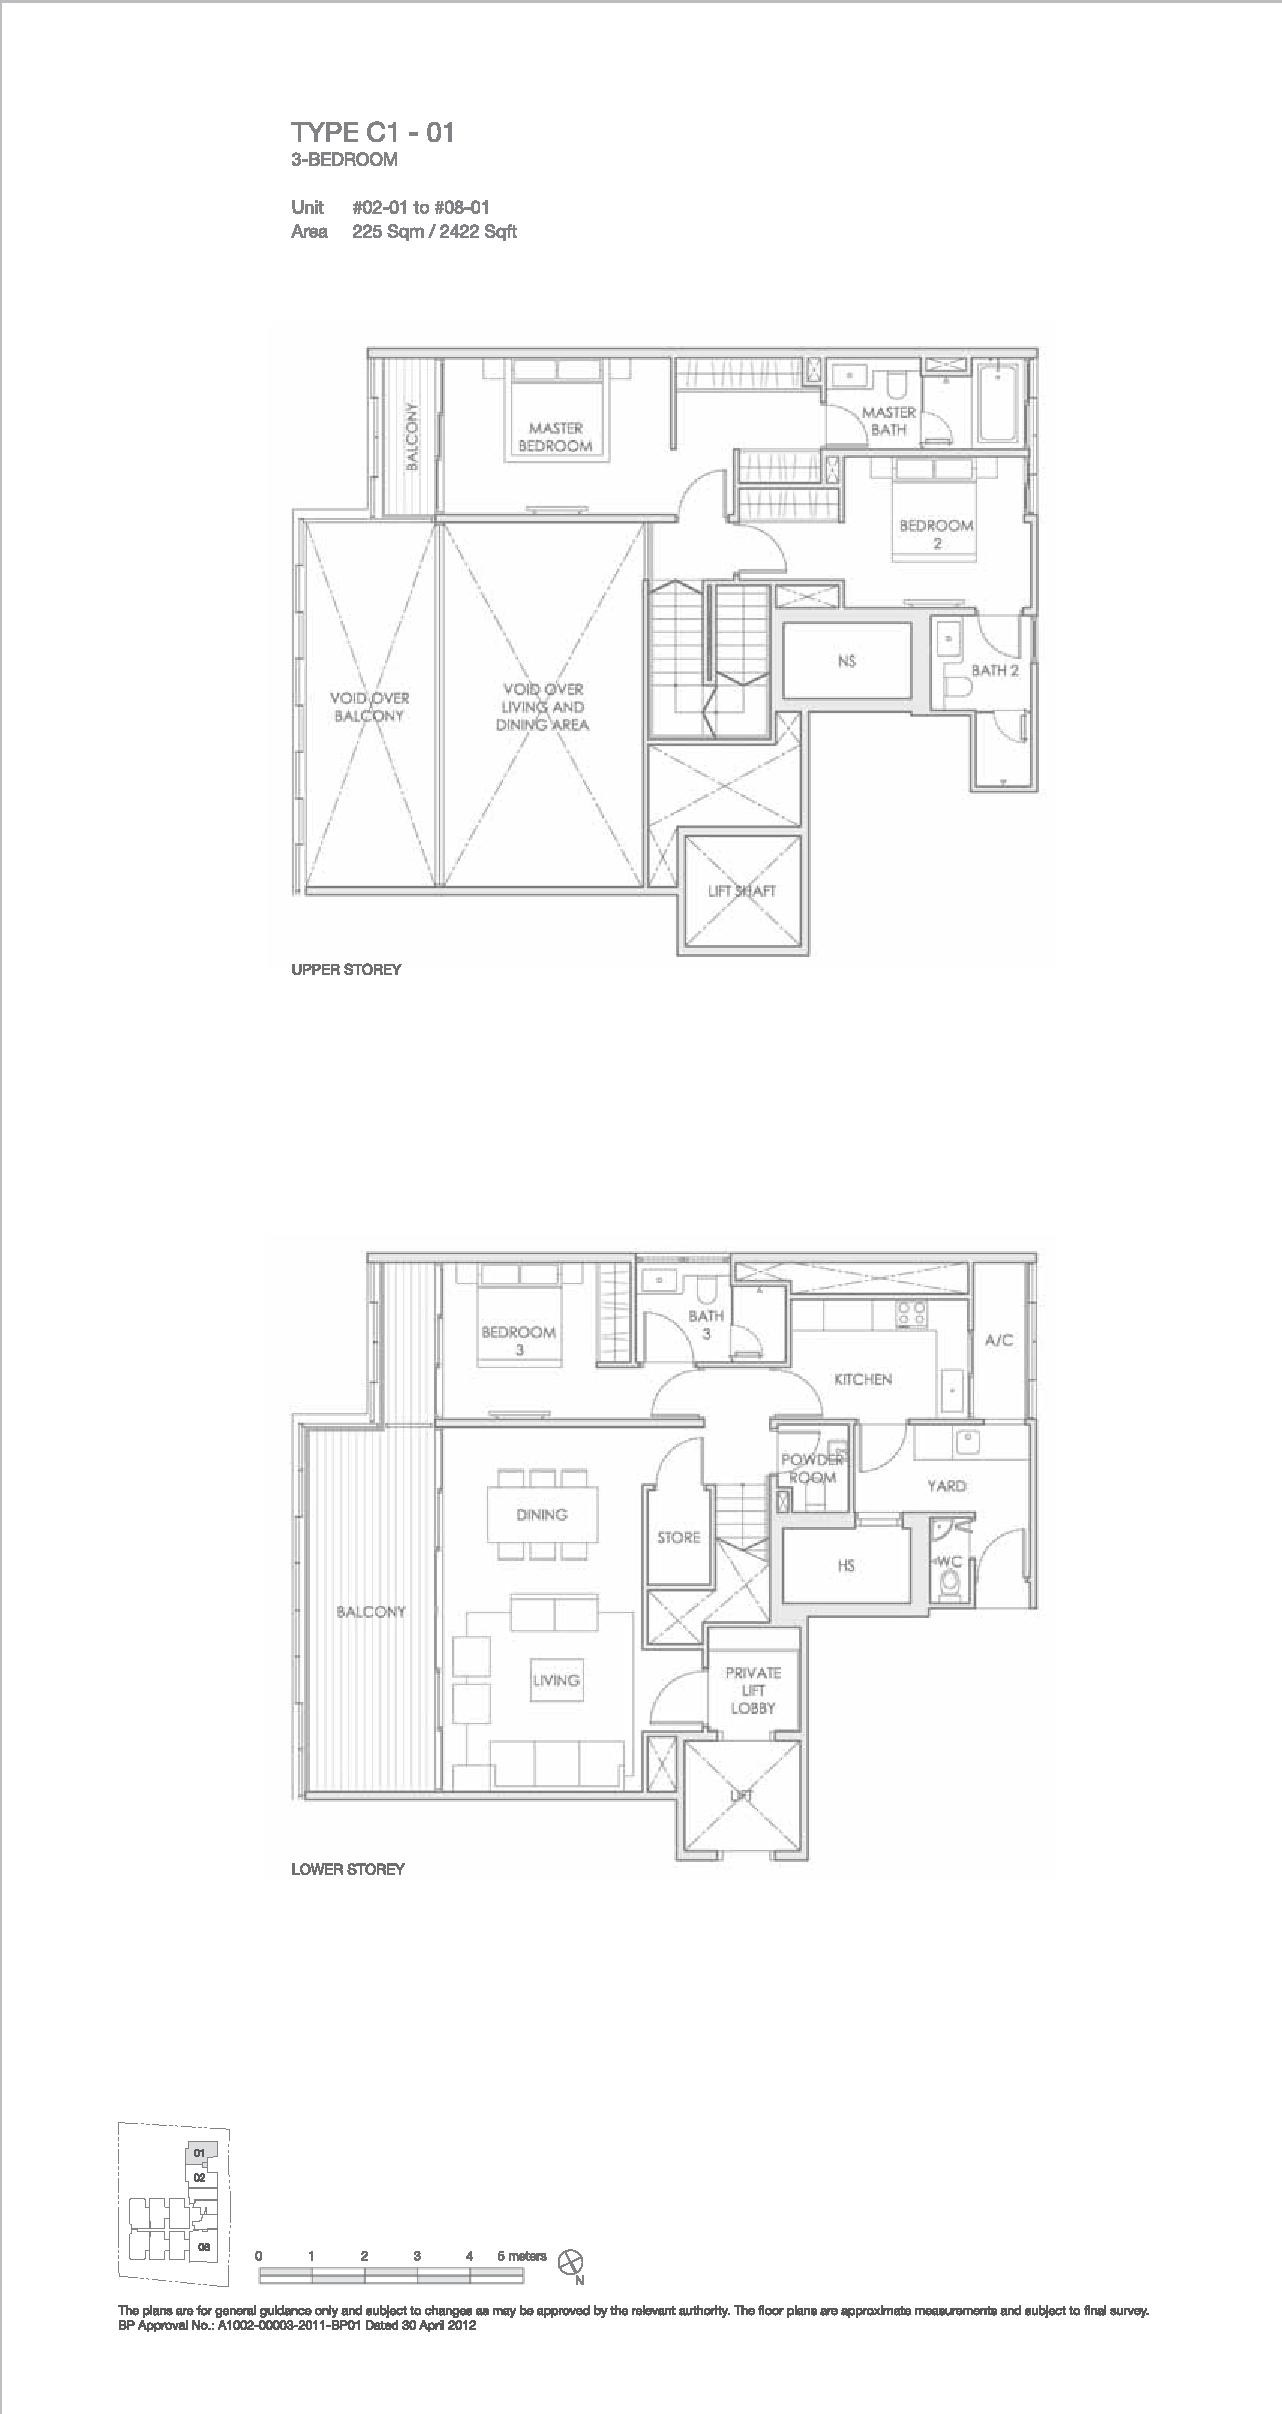 Llyod 65 3 Bedroom Floor Plan Type C1-01